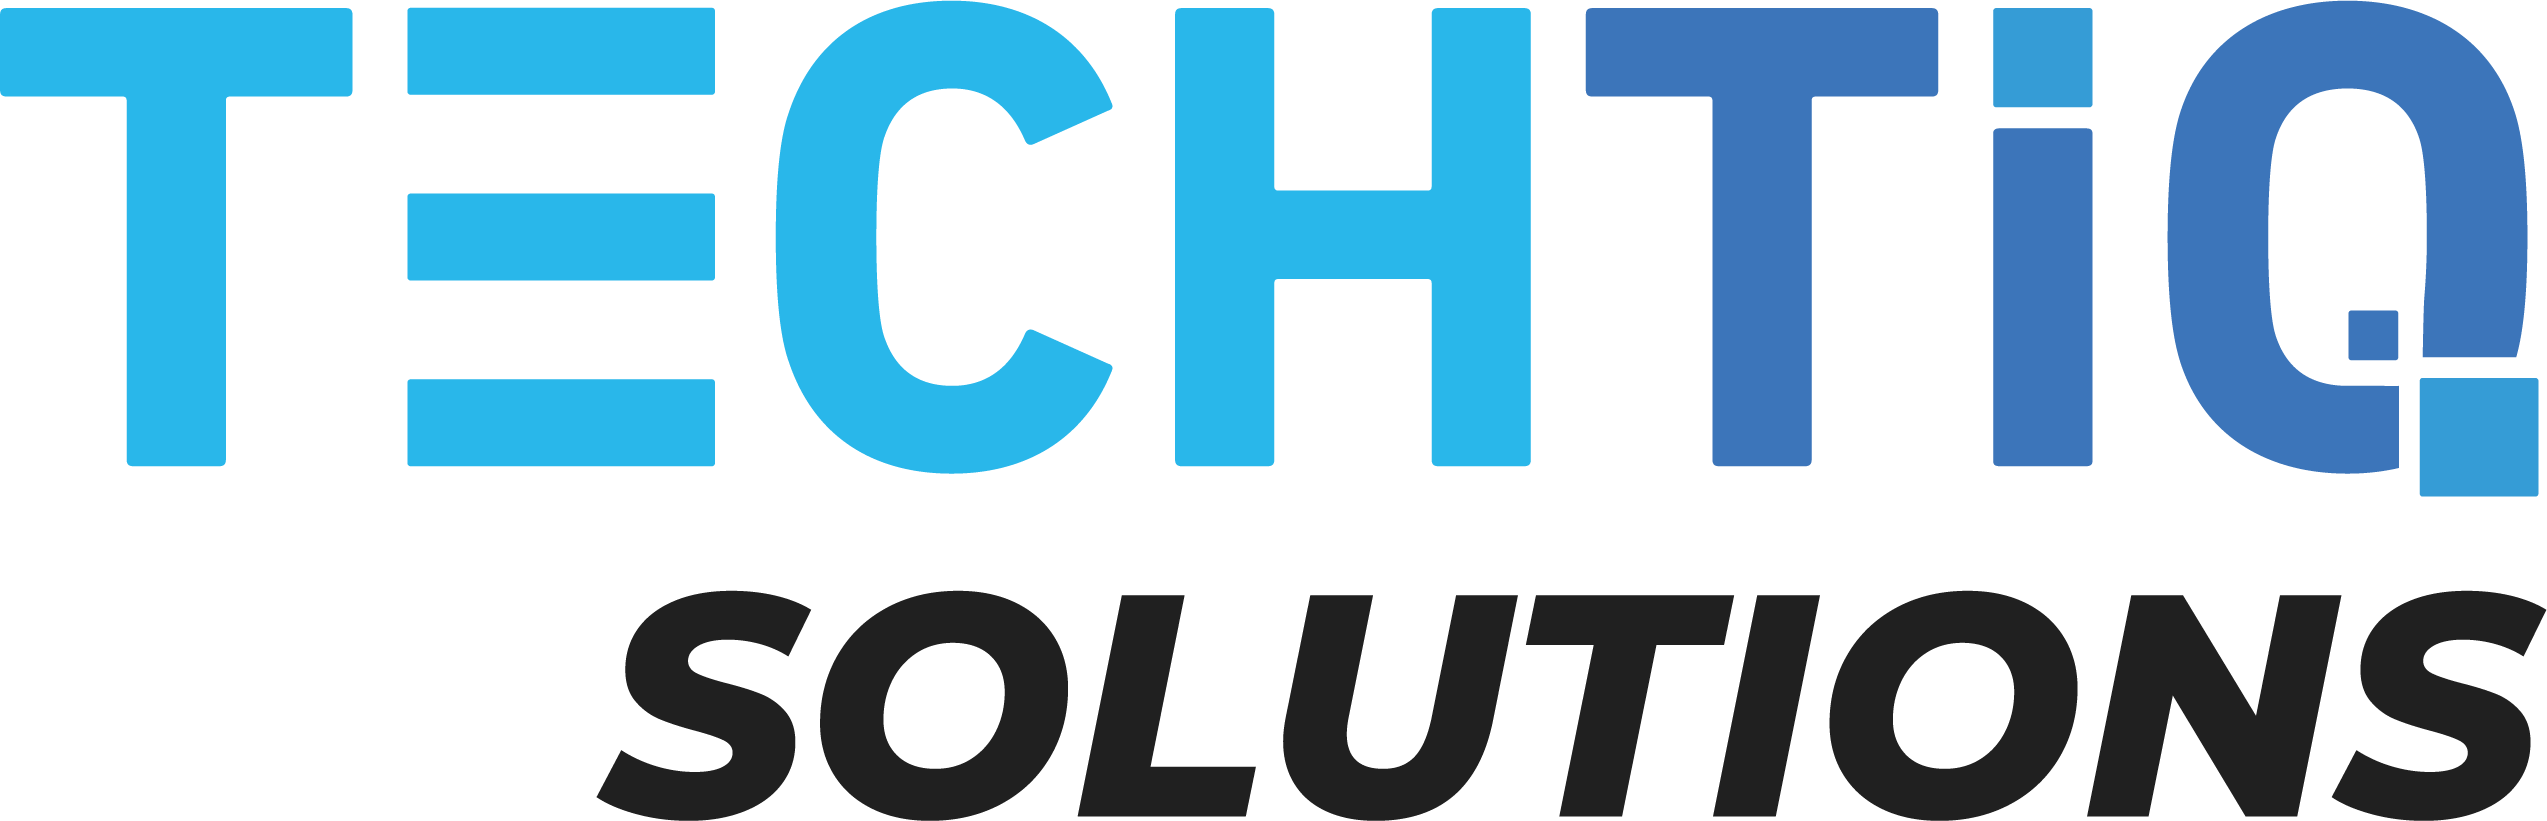 Techtiq Solutions Logo